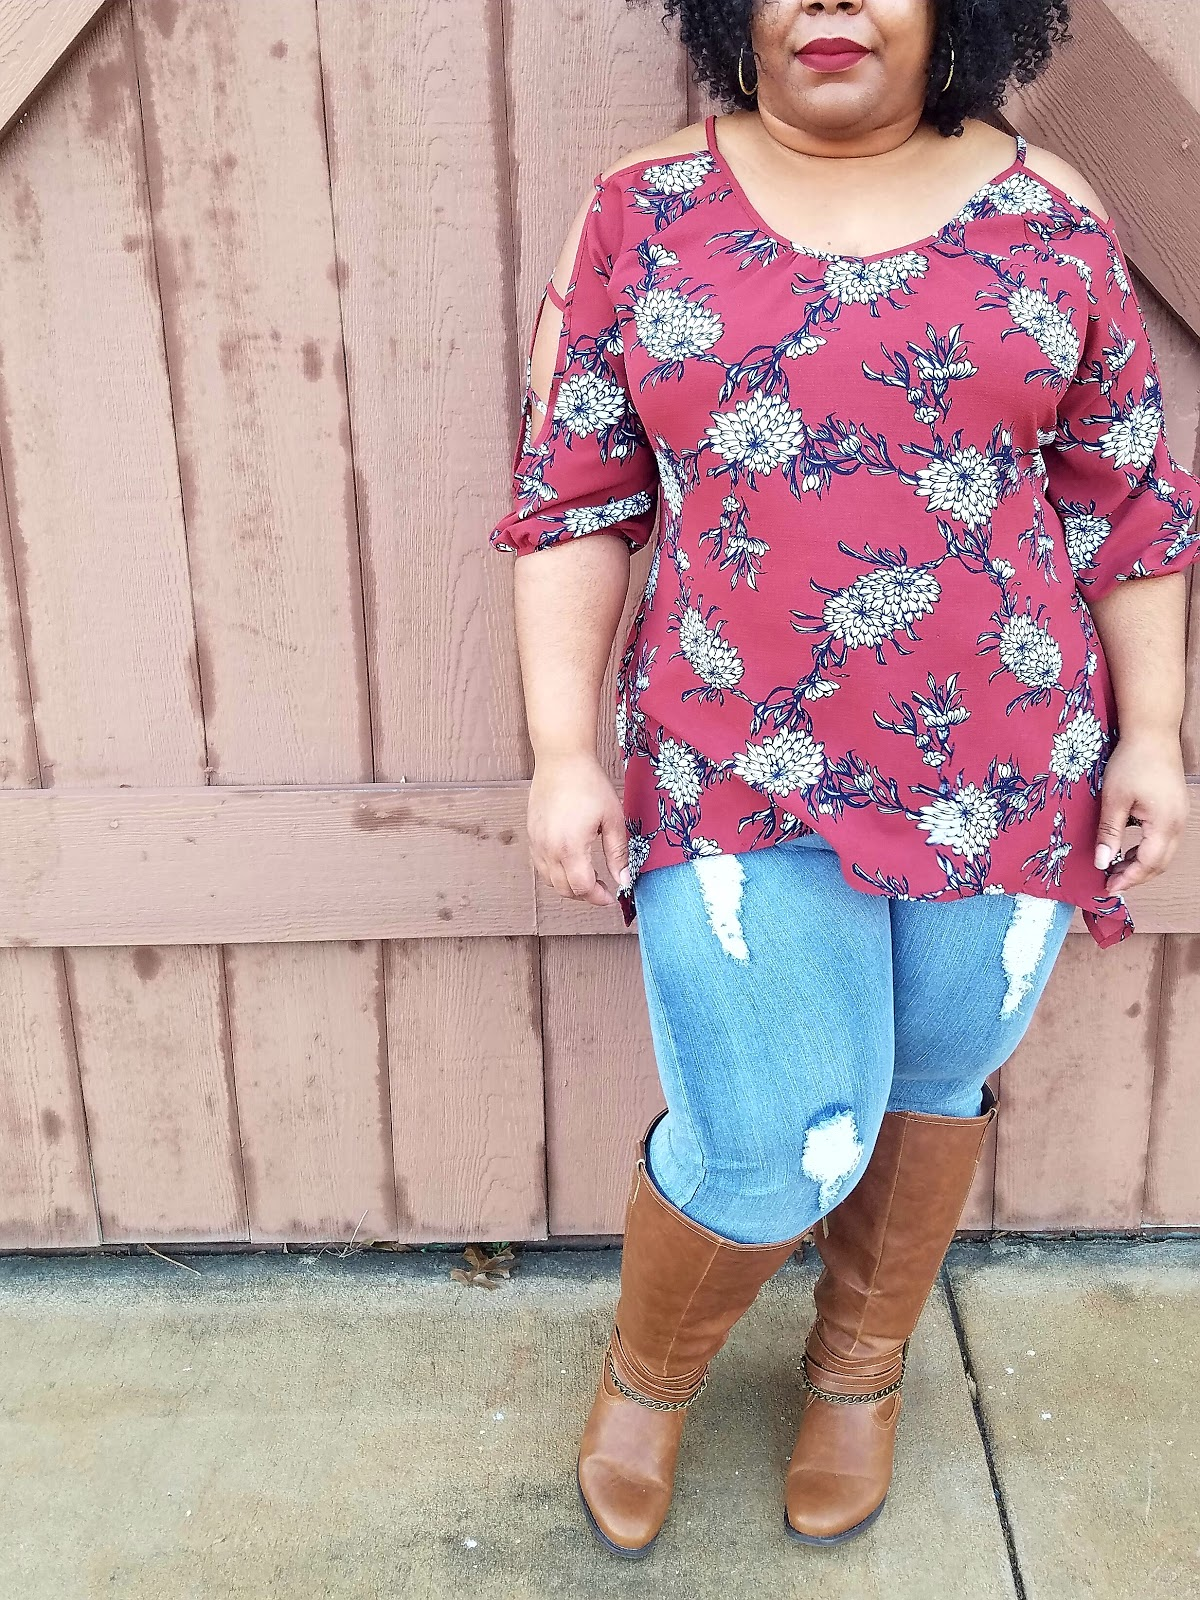 Floral print, ripped jeans, tall boots, thick thighs, curvy blogger